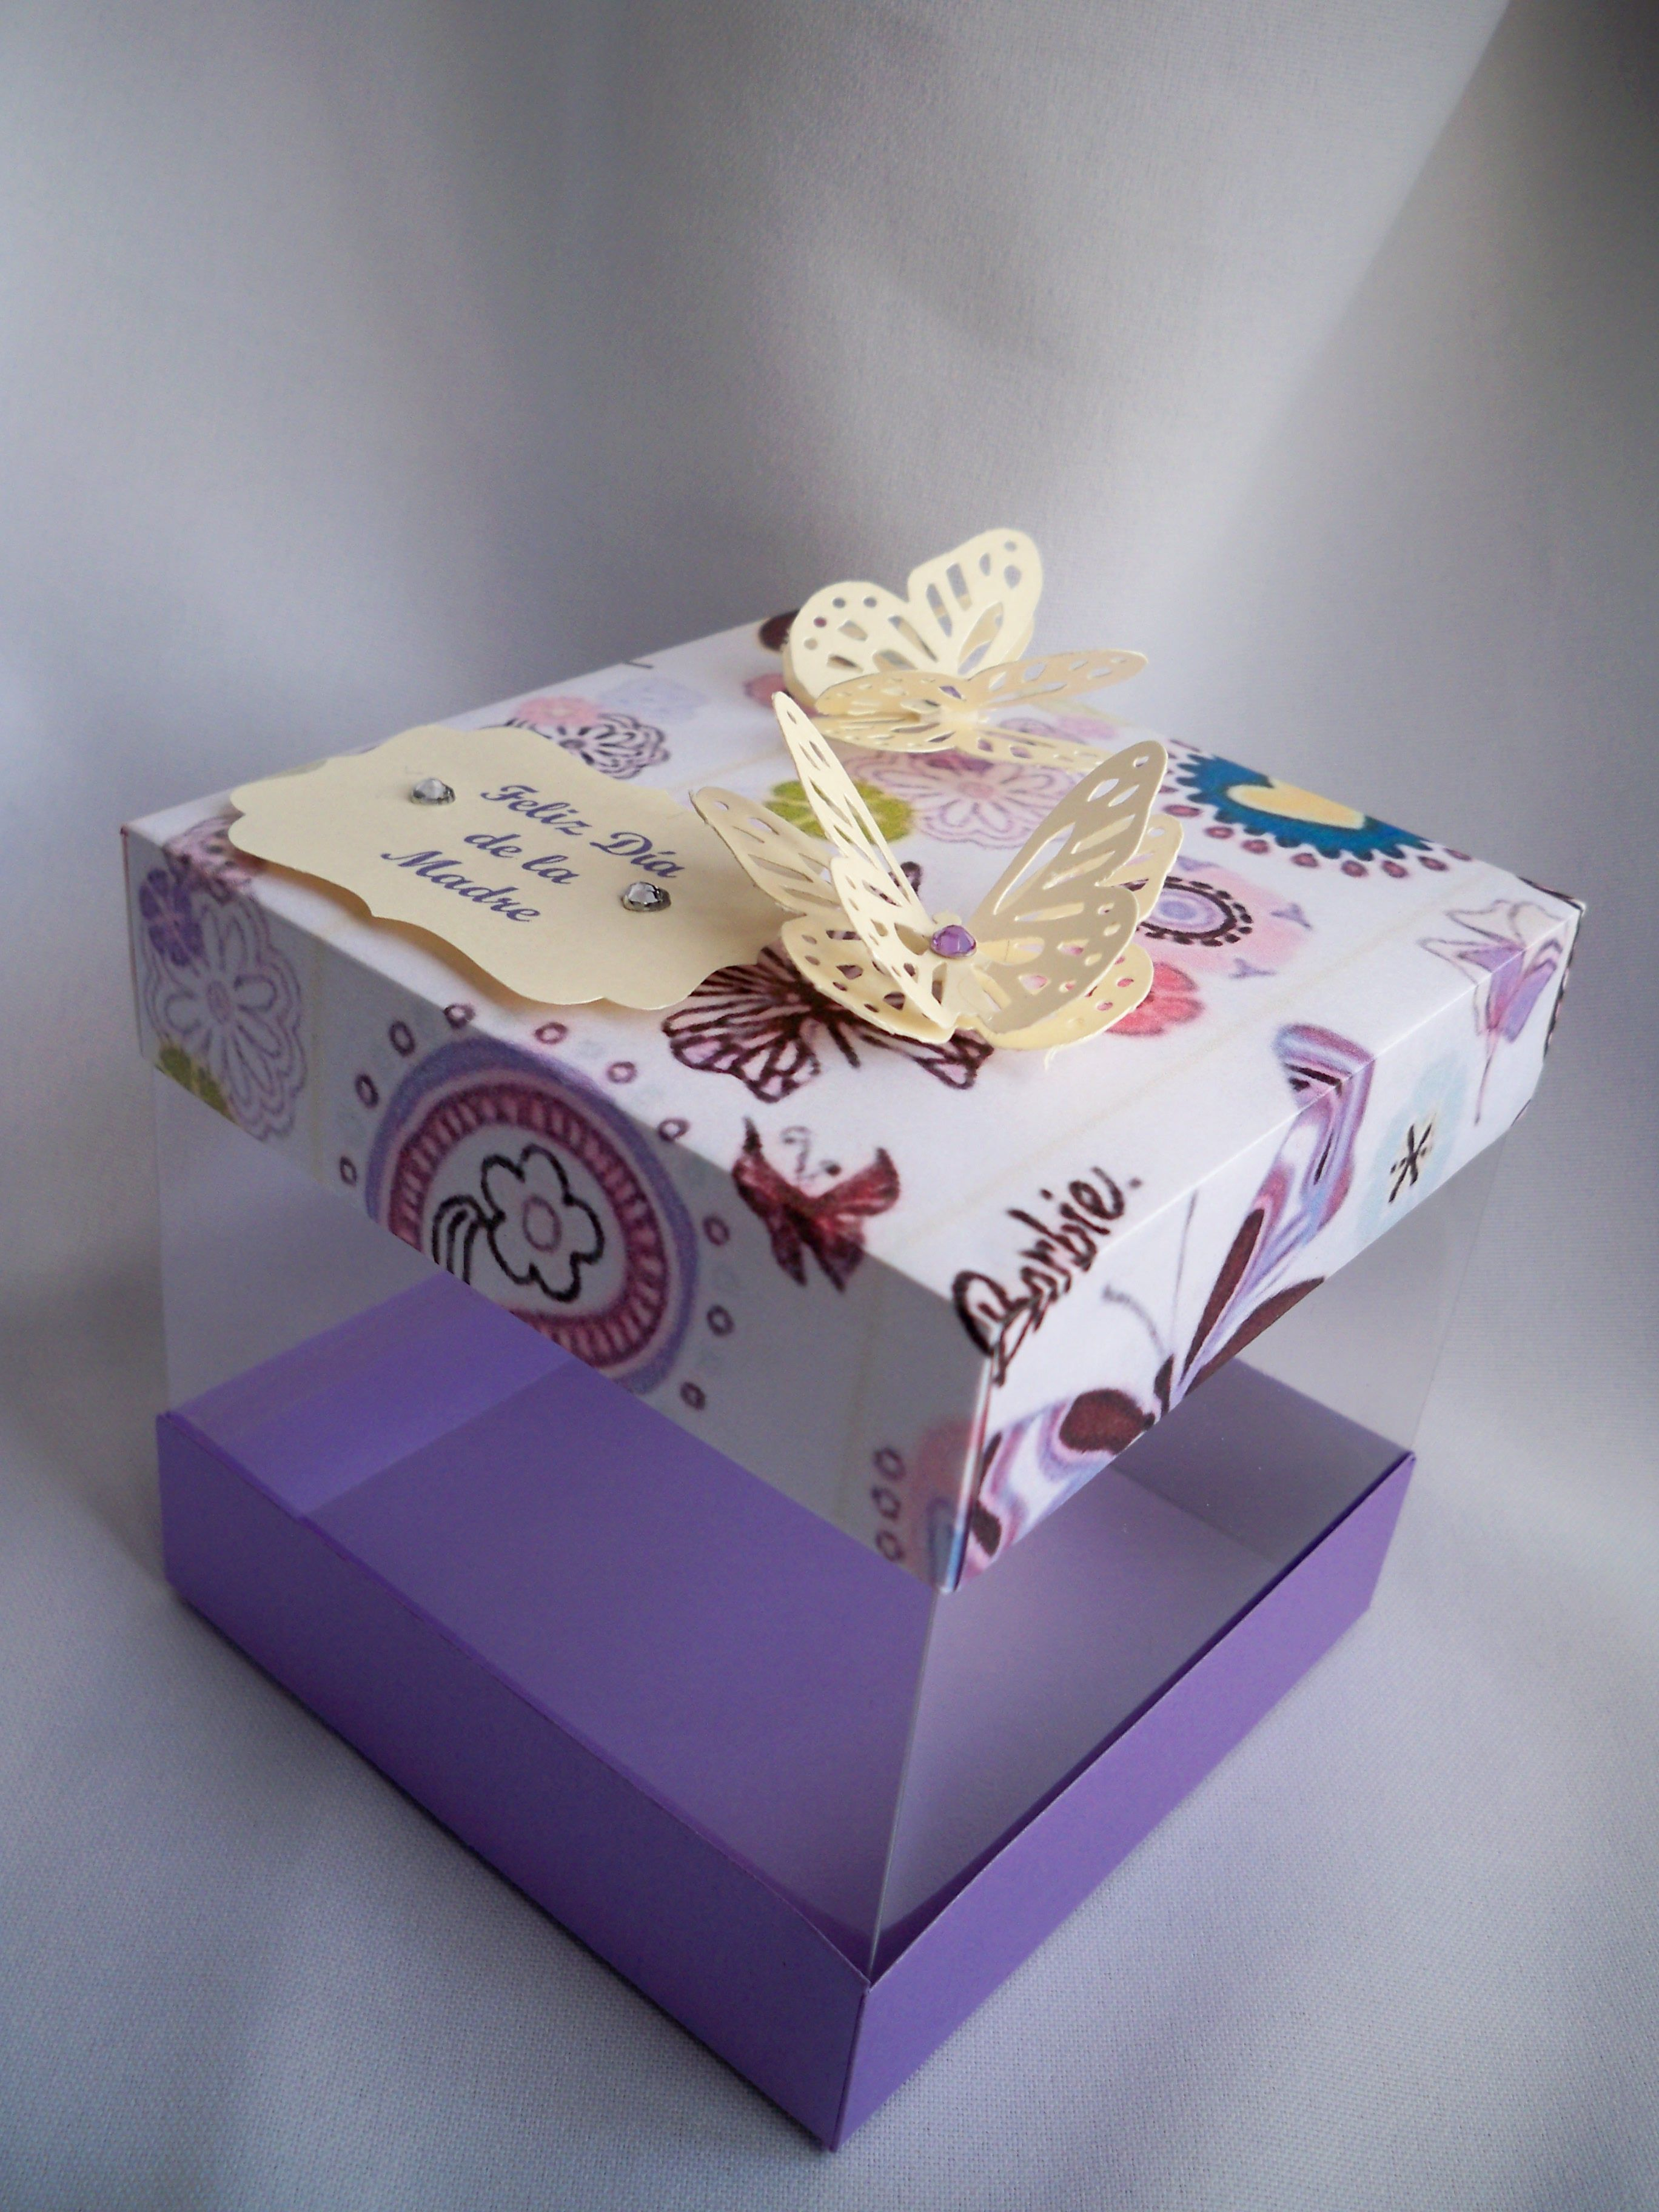 cristal The Originals, Crystals, Boxes, Gifts